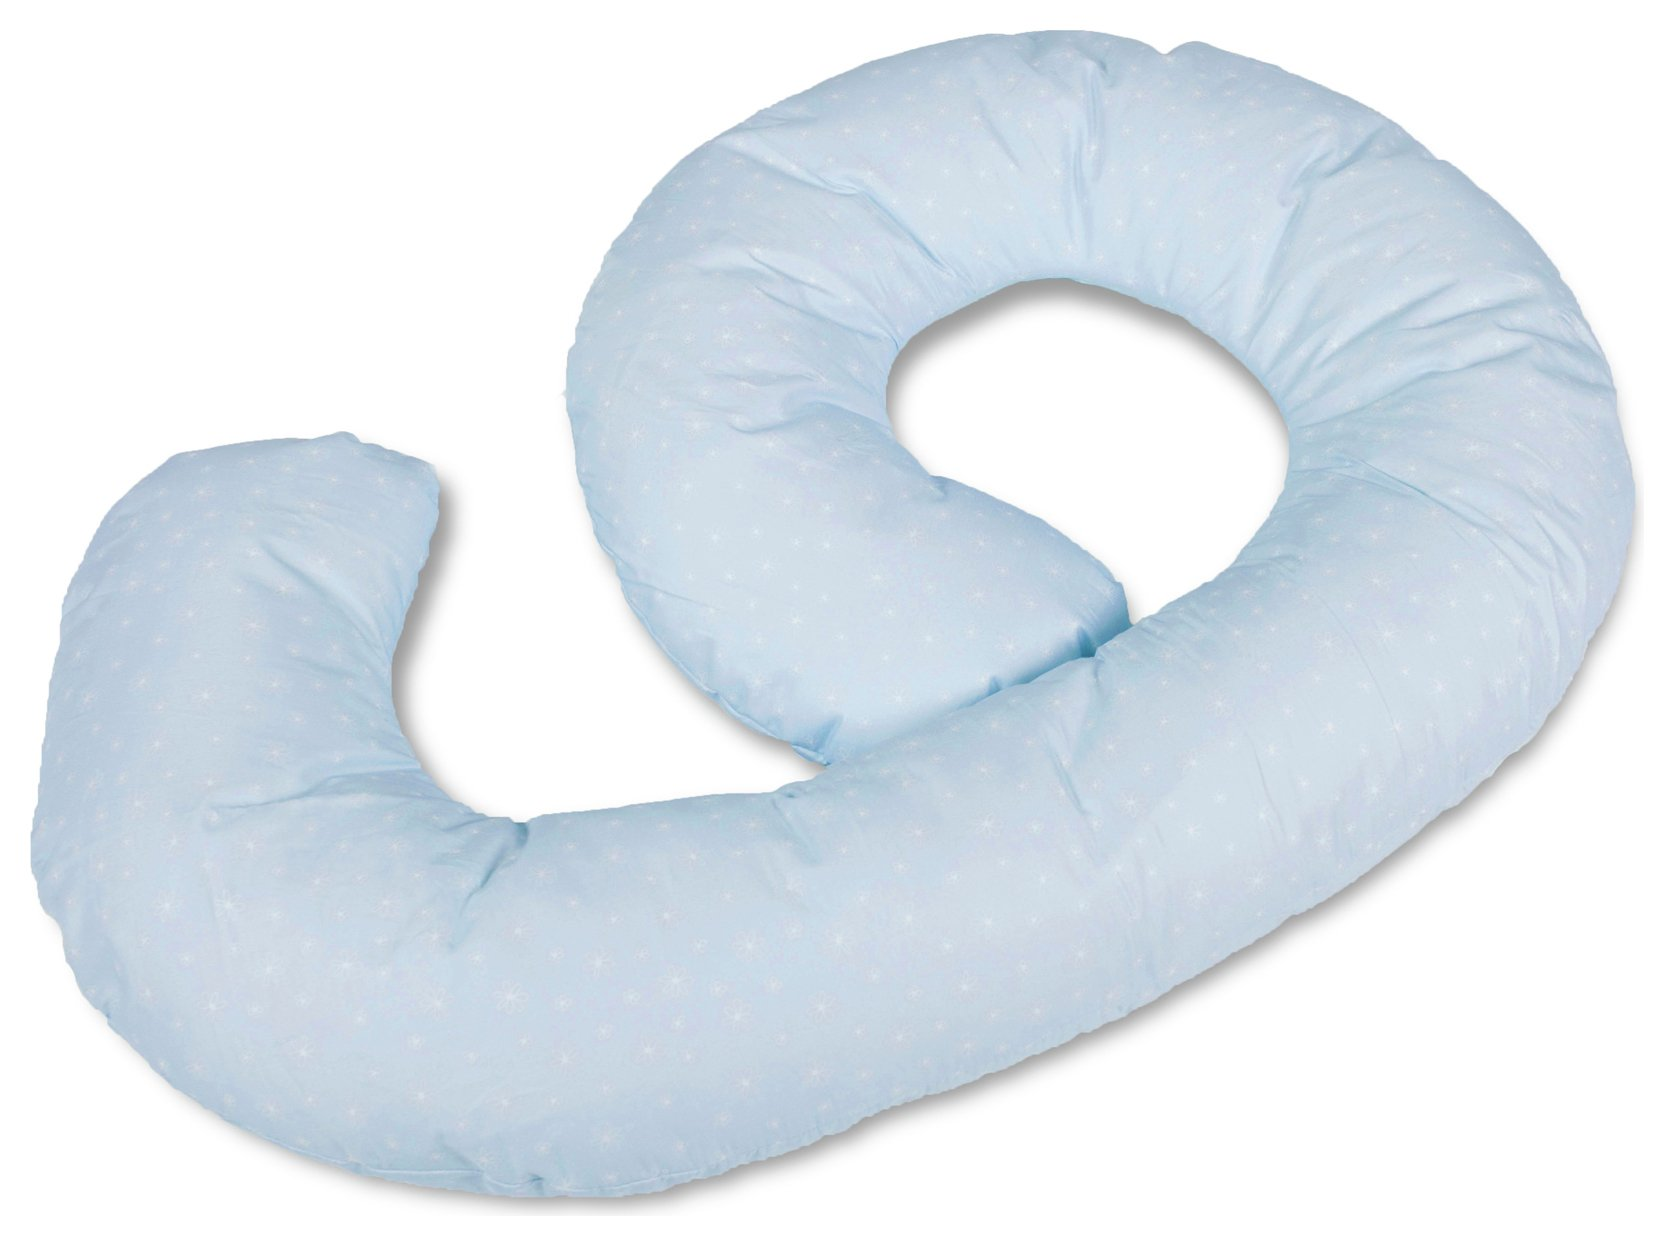 Kit for Kids Cuddle Me Pregnancy Pillow - Blue Flower